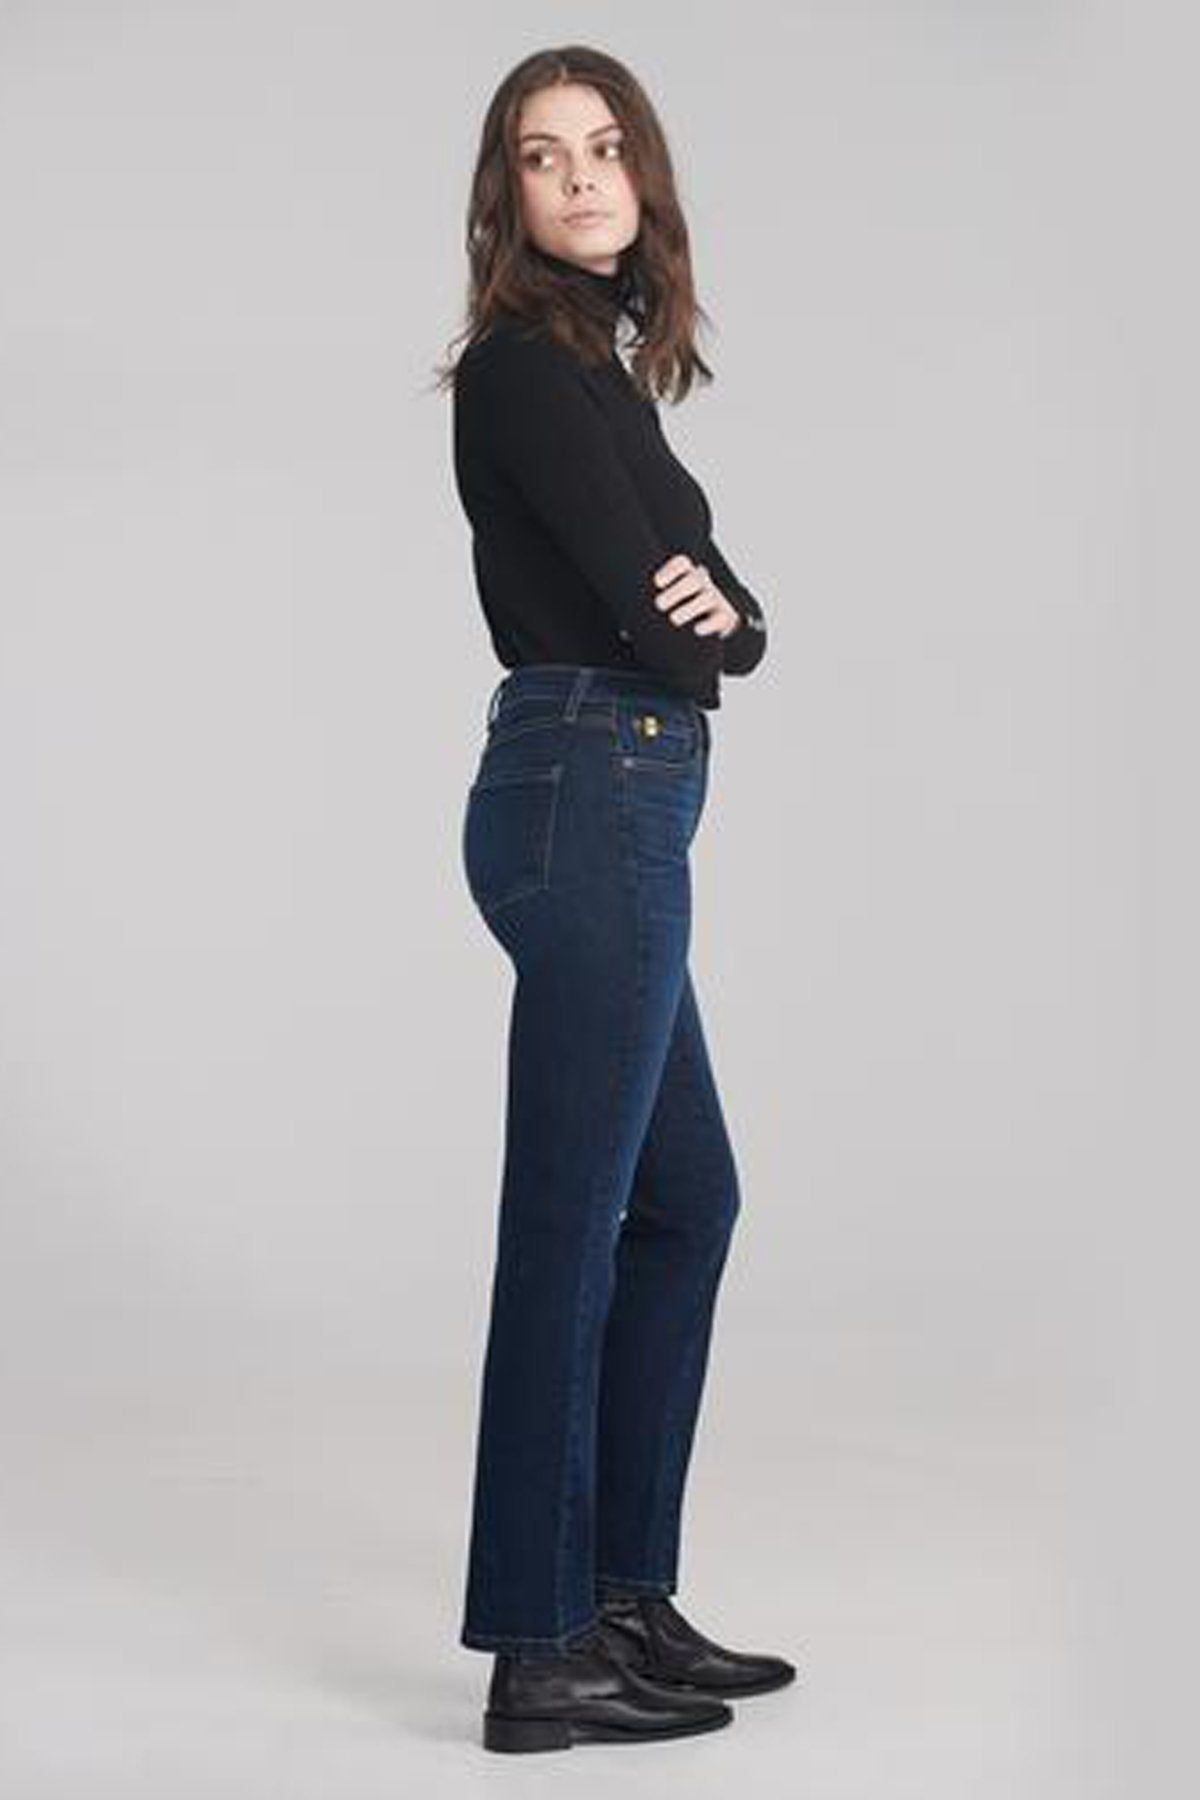 Classic Rise Straight Yoga Jean, Namaste, side view, classic rise waist, straight cut, 32 inch inseam, sizes 24-34, made in Canada